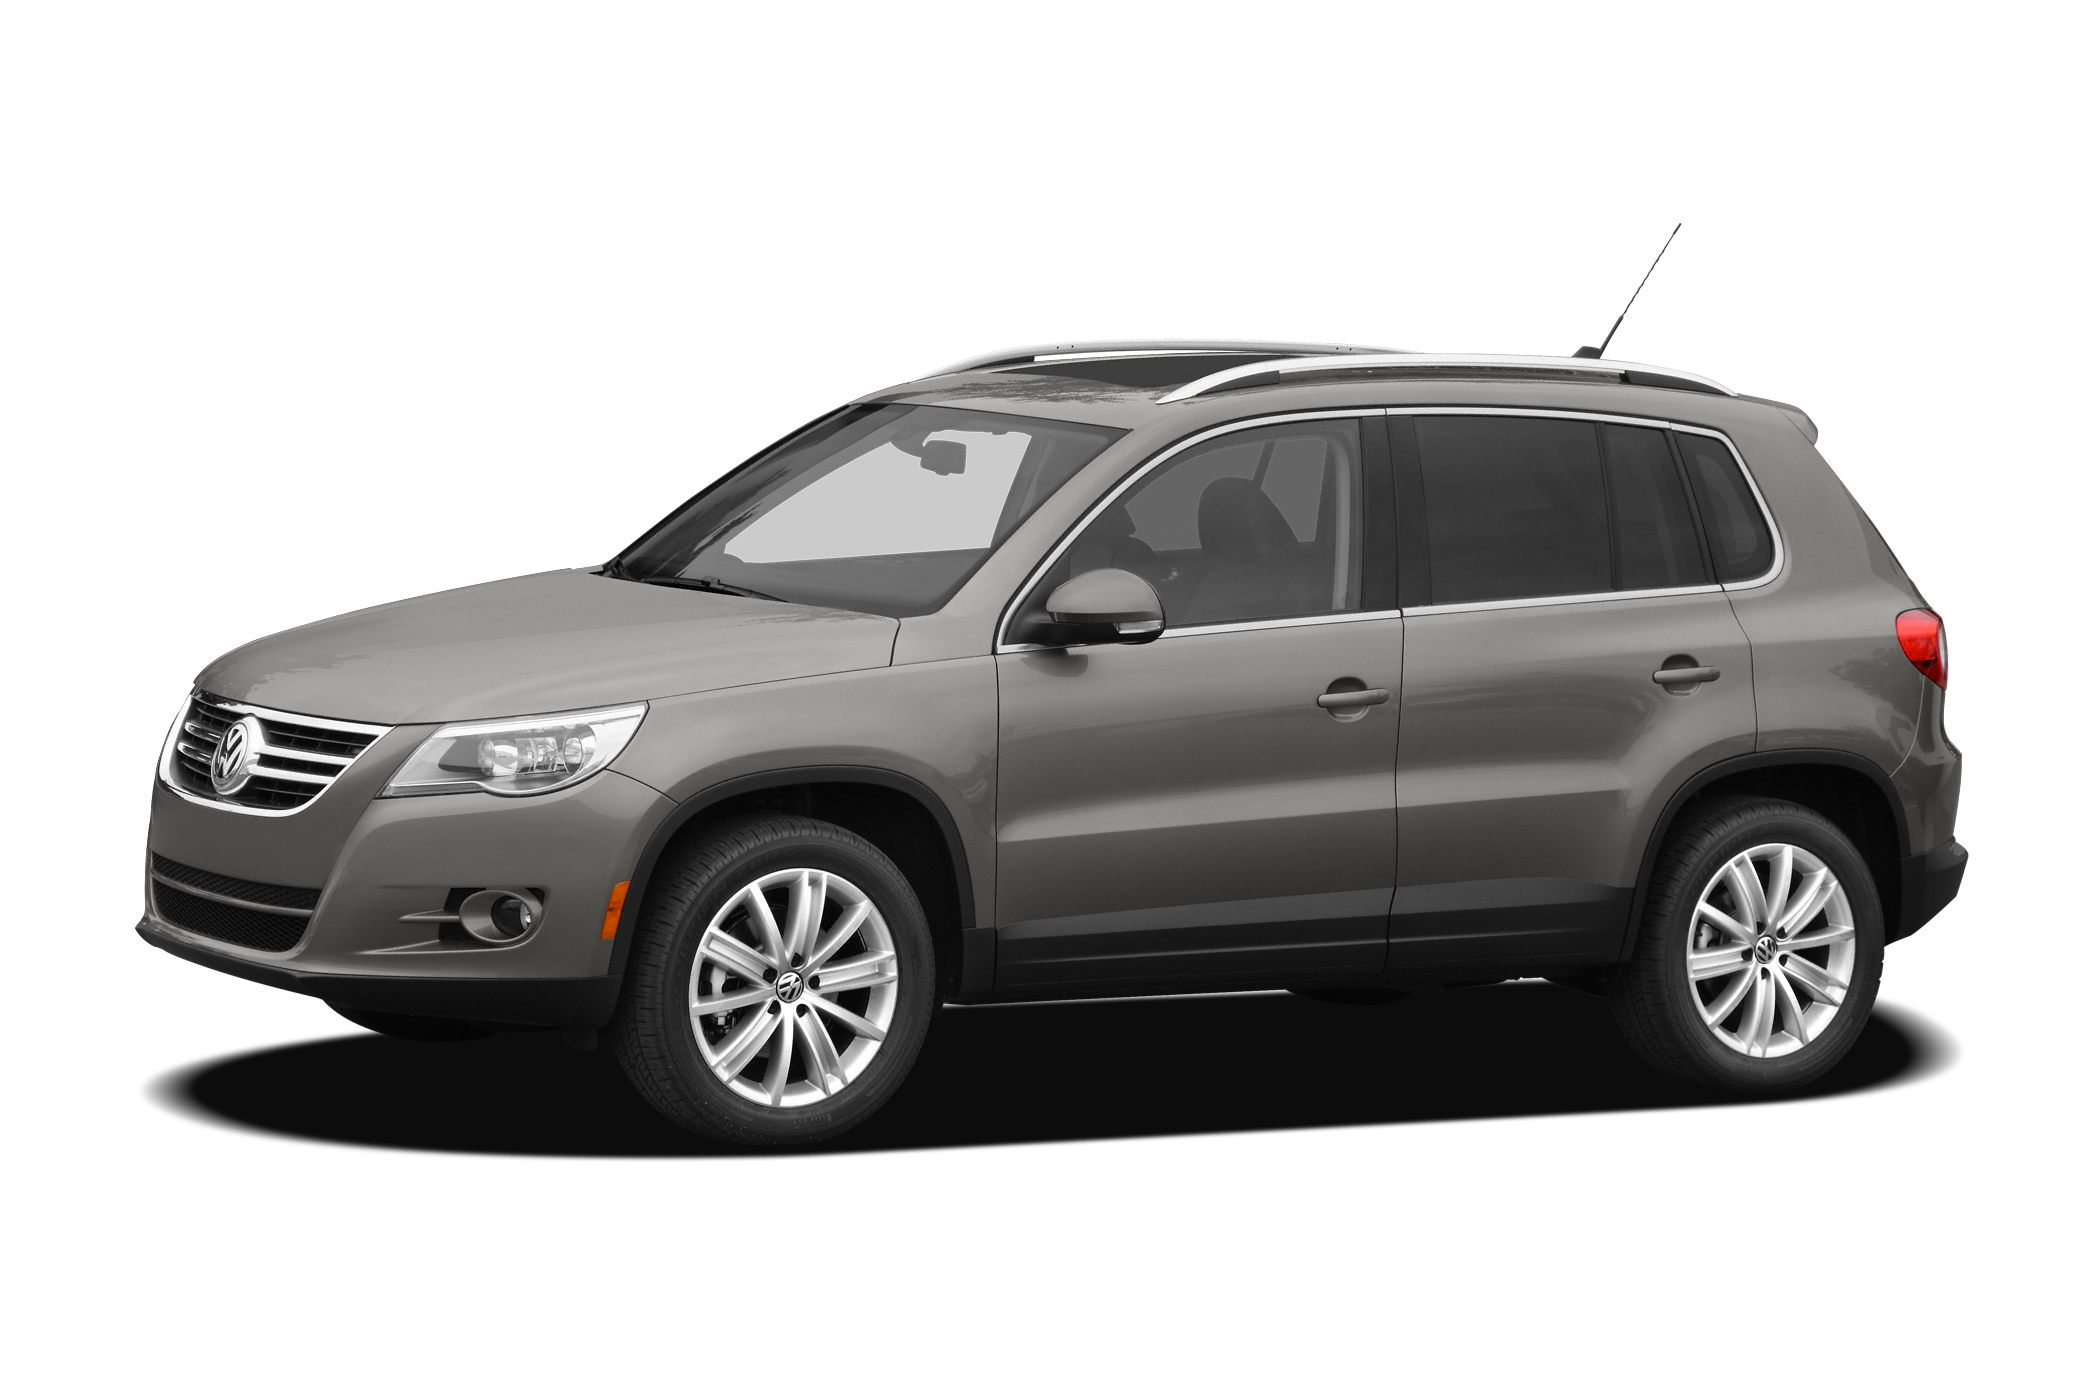 2009 Volkswagen Tiguan Specs, Safety Rating & MPG - CarsDirect